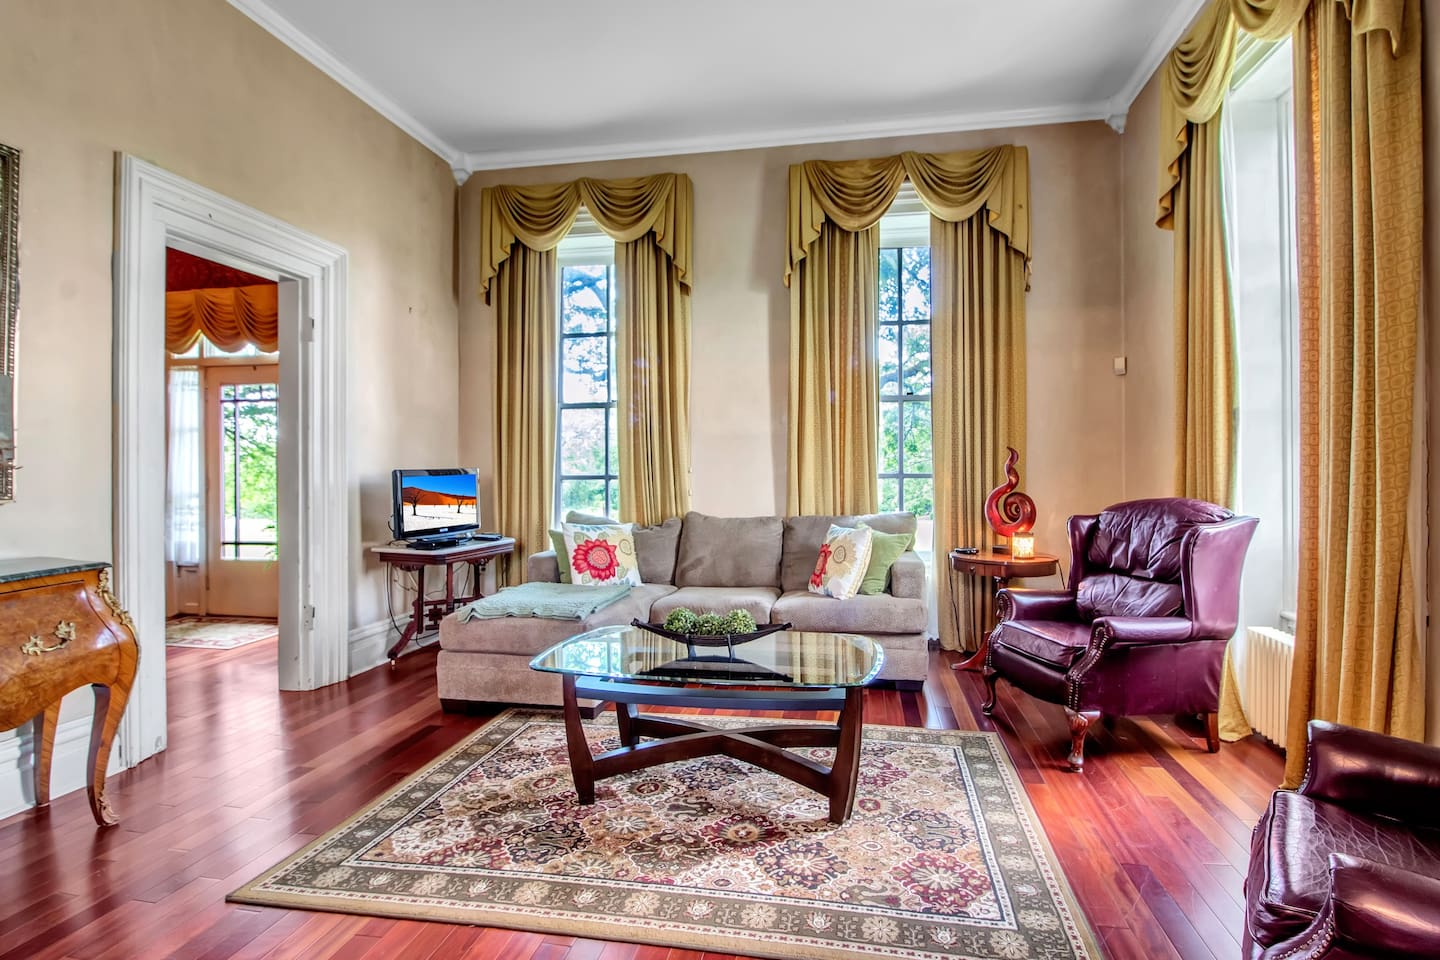 The Living Room of the Vineyard Manor House is Shabby Chic with 14' ceilings and swagged drapes on the plantation style windows.